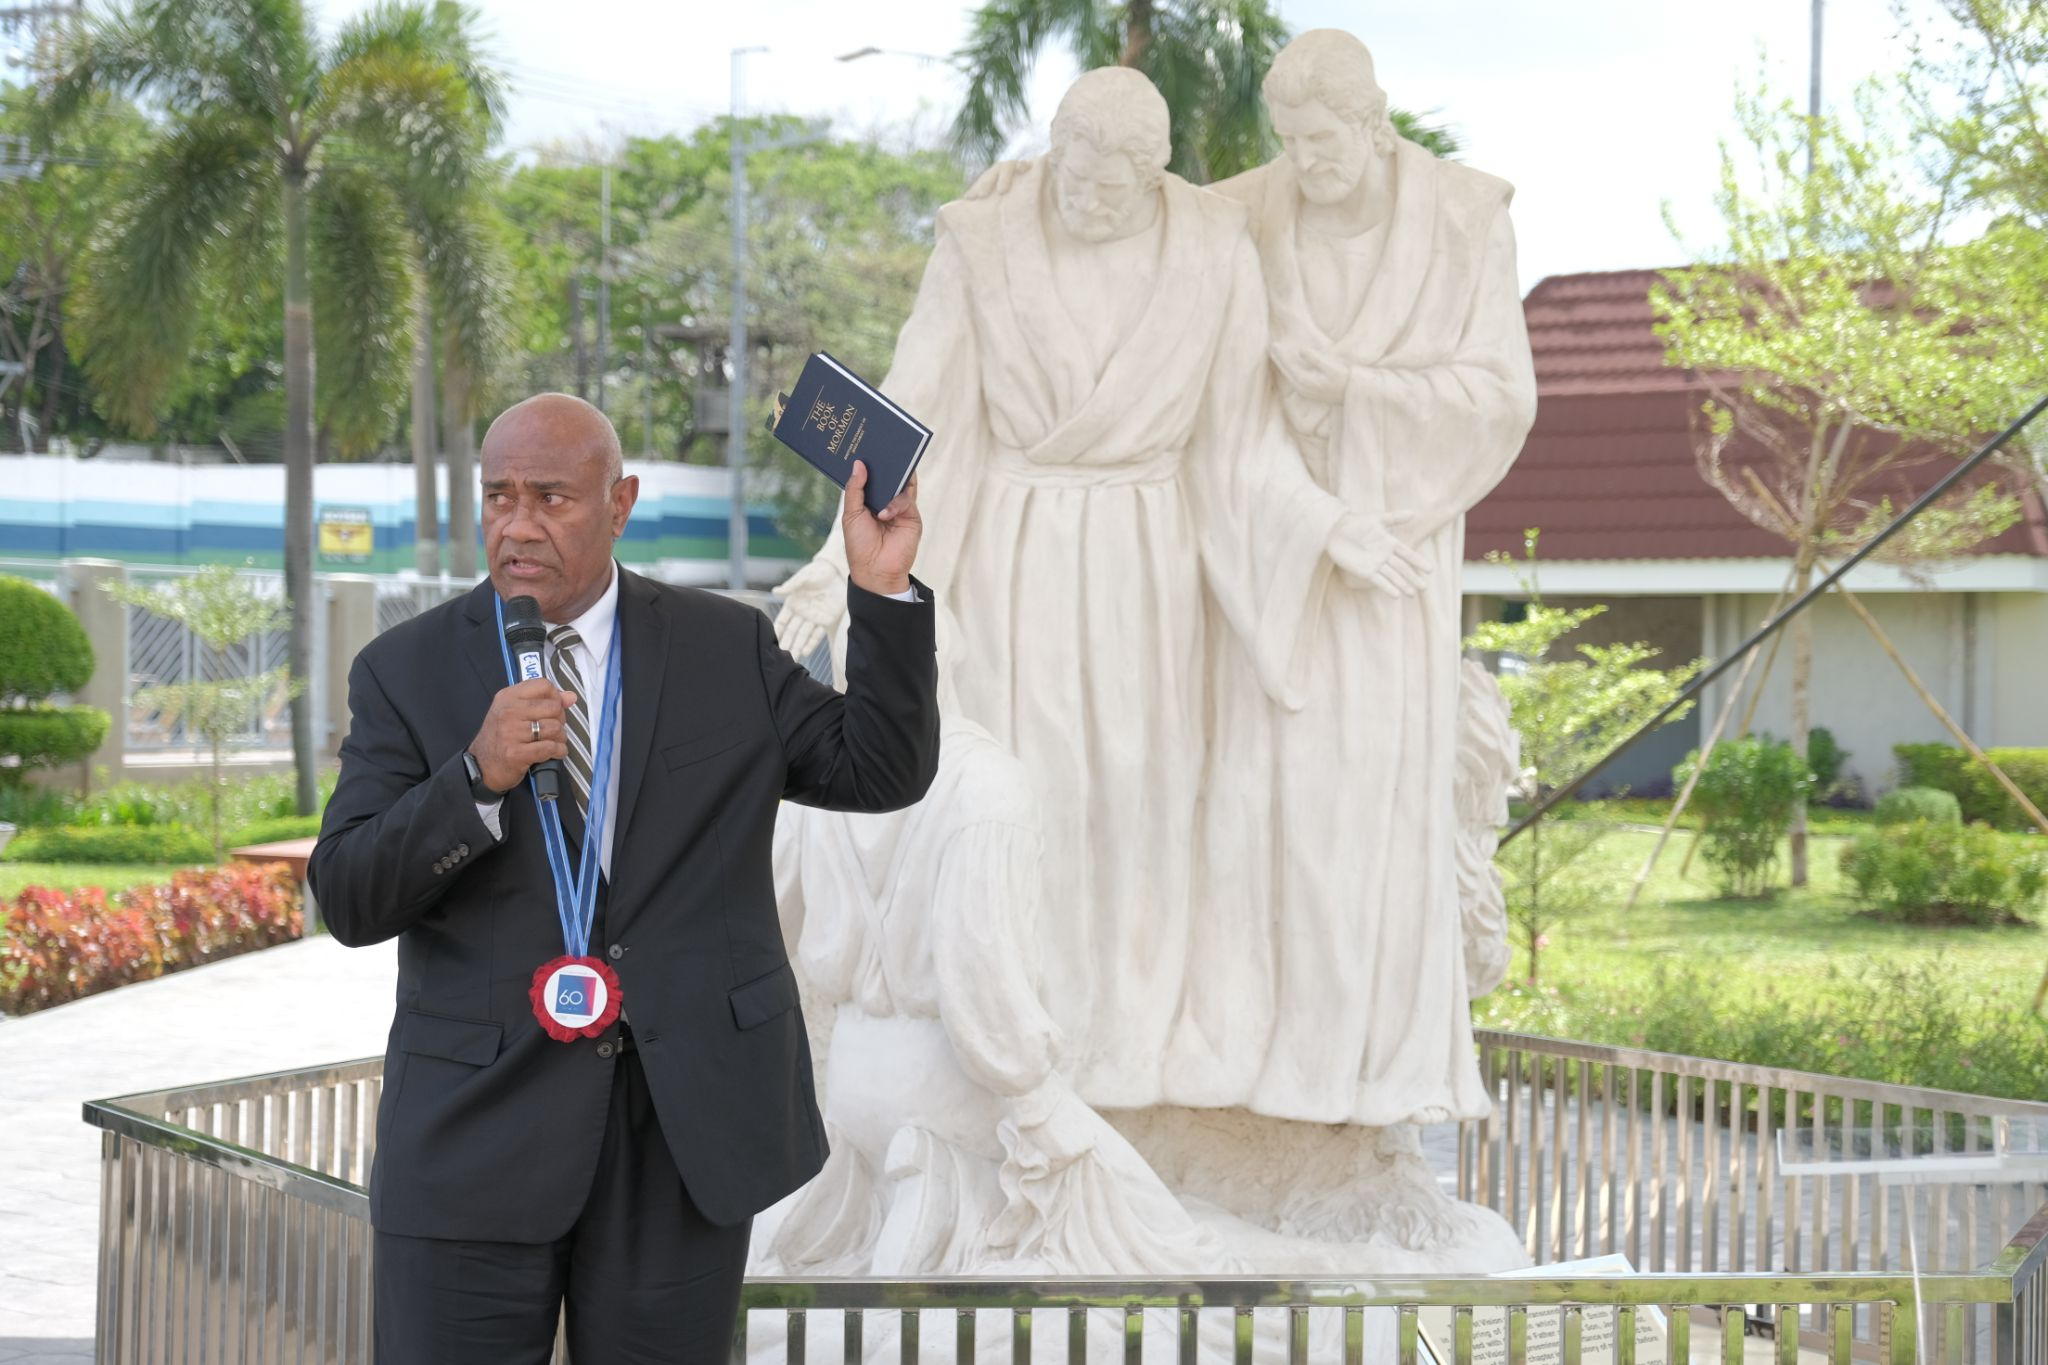 """(The Church of Jesus Christ of Latter-day Saints) Elder Taniela Wakolo of the Philippines Area Presidency speaks at the unveiling of a statue of the """"First Vision"""" outside the Missionary Training Center in the country."""